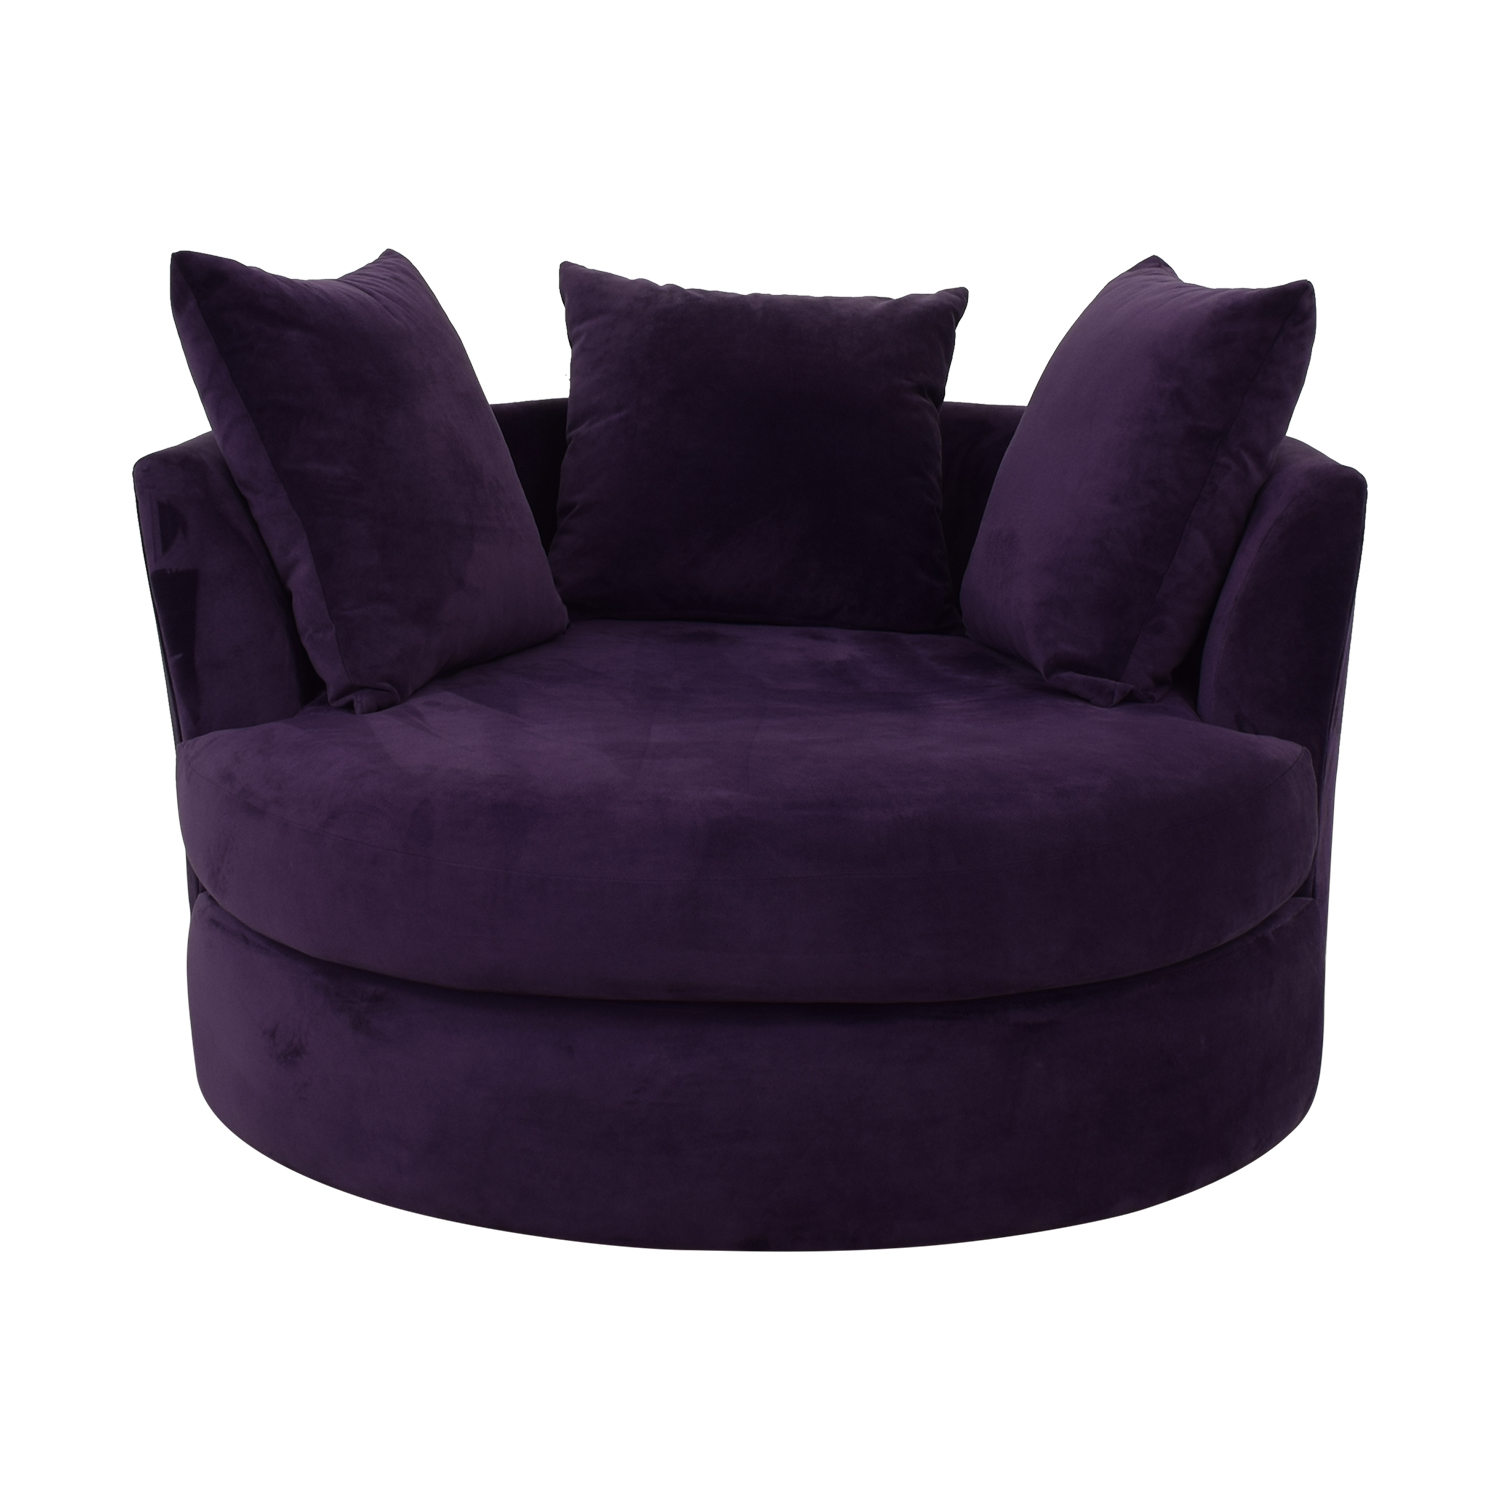 Jonathan Louis Deep Purple Swivel Chair / Accent Chairs